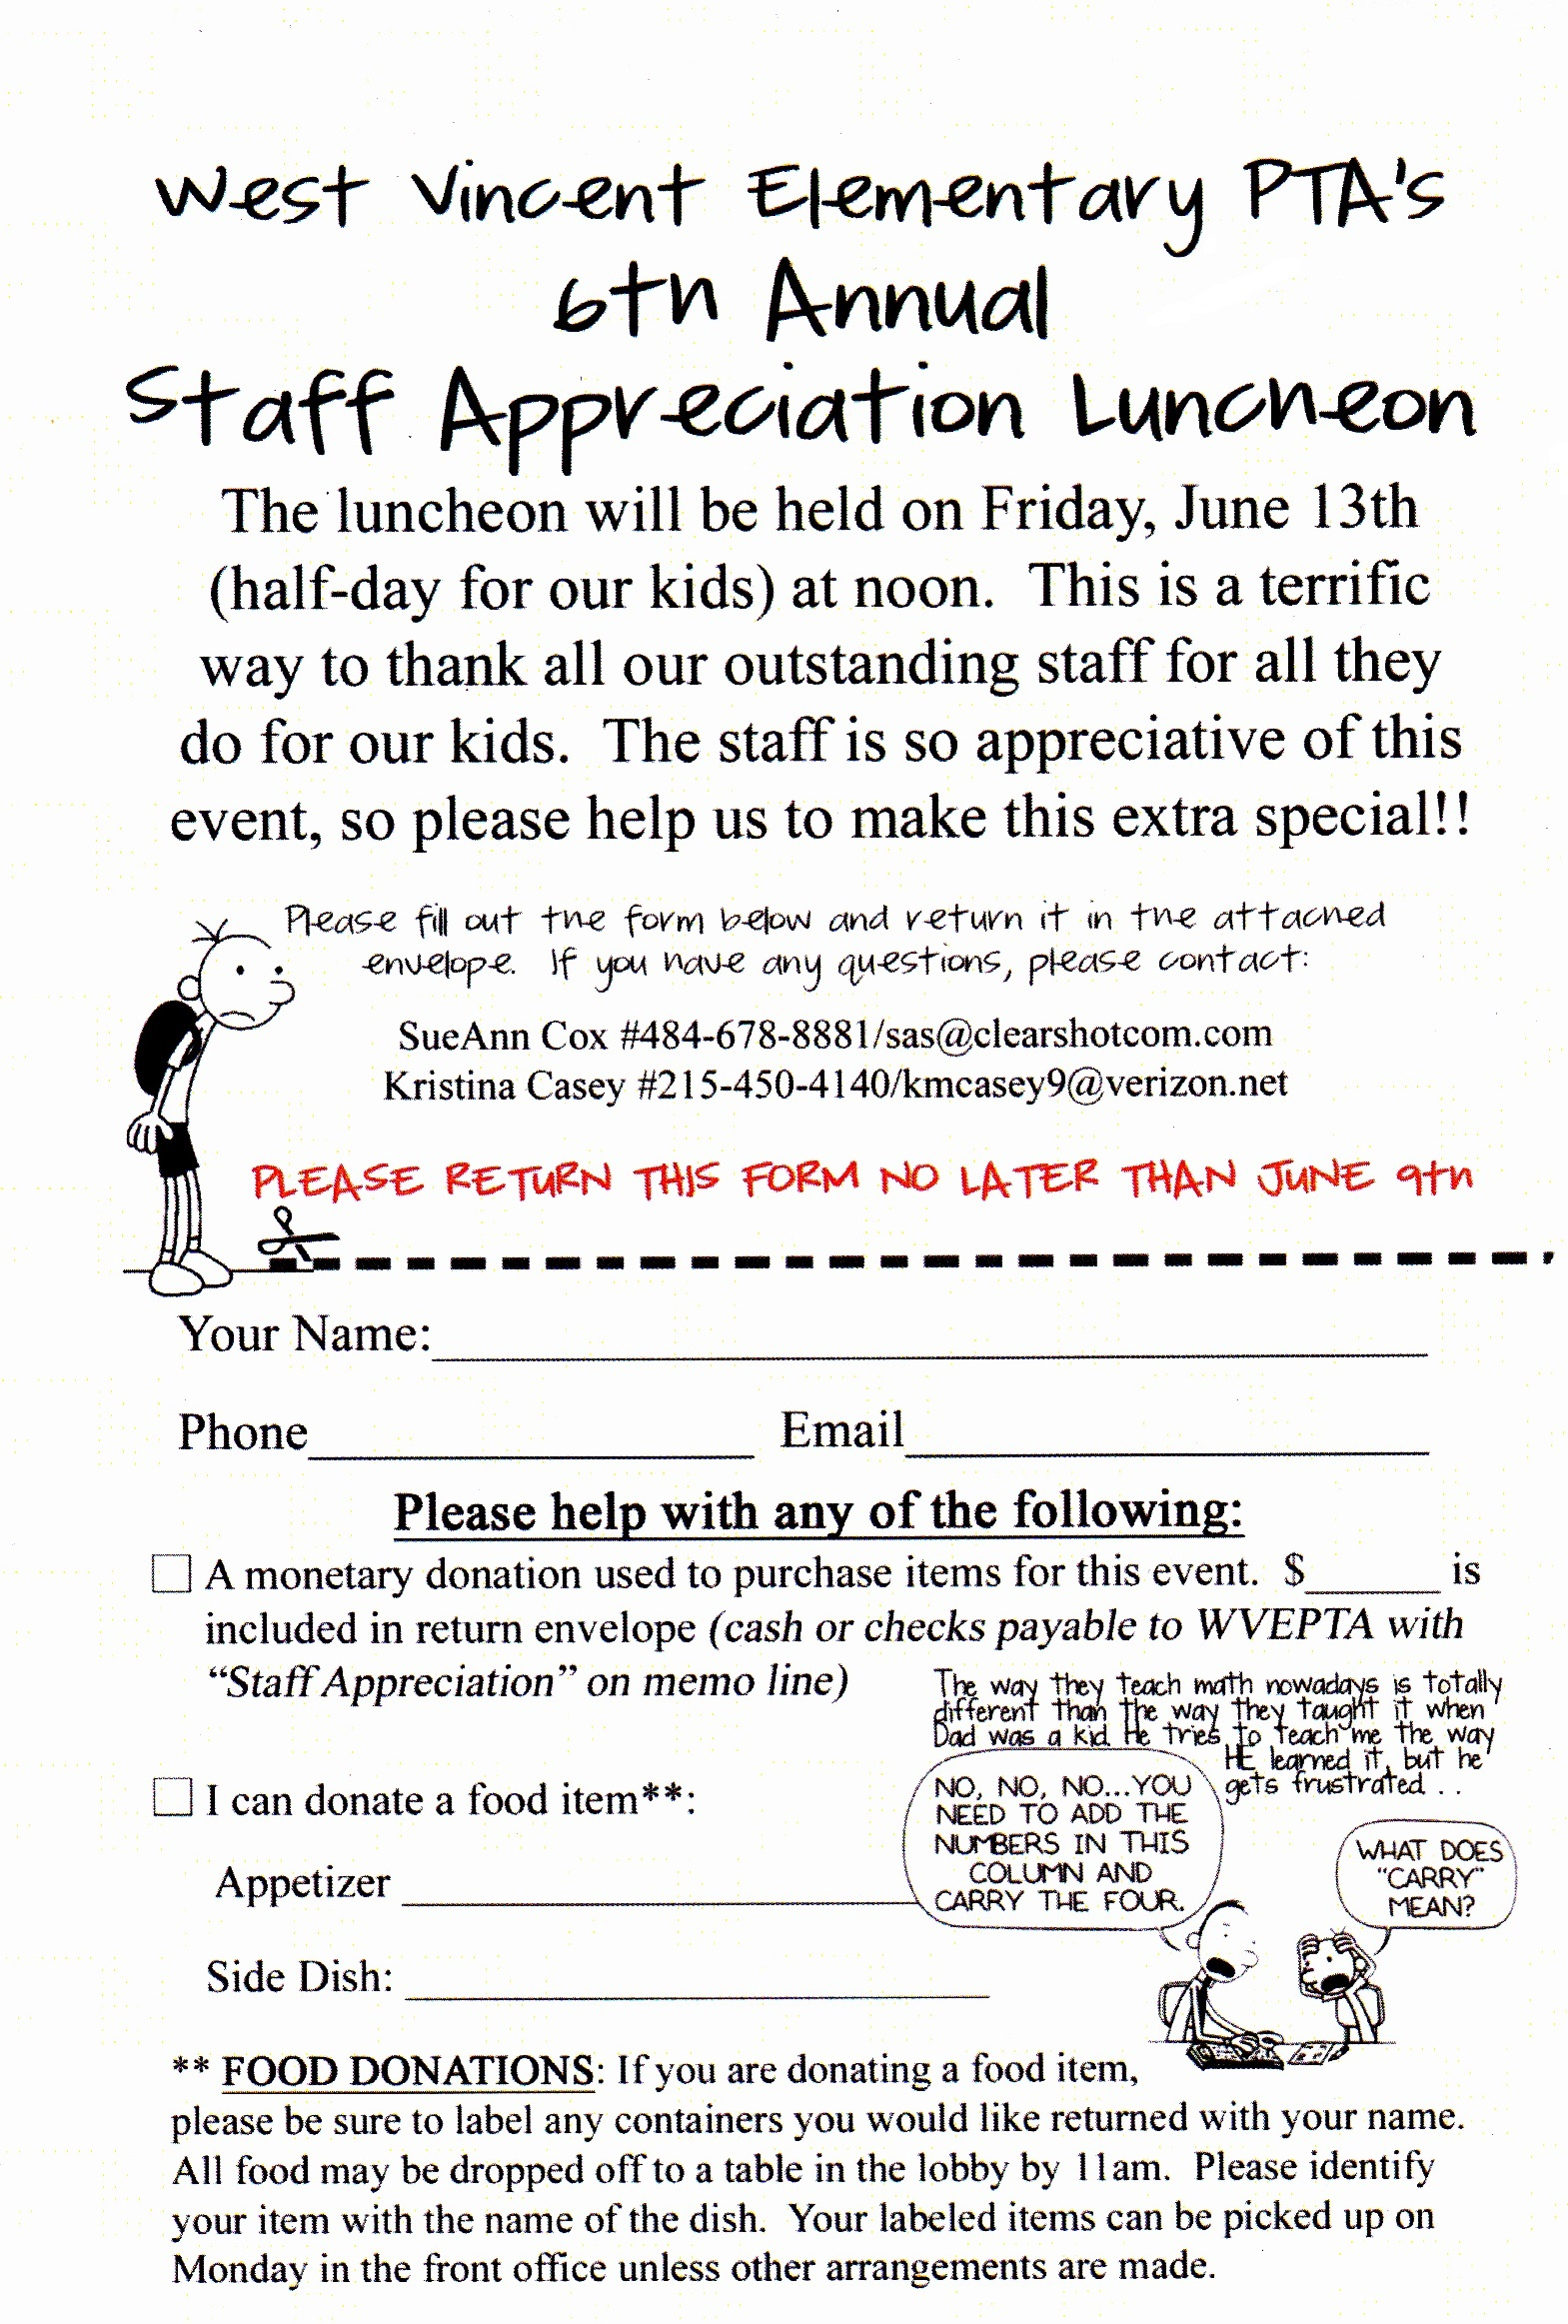 Click image to print and send in to school